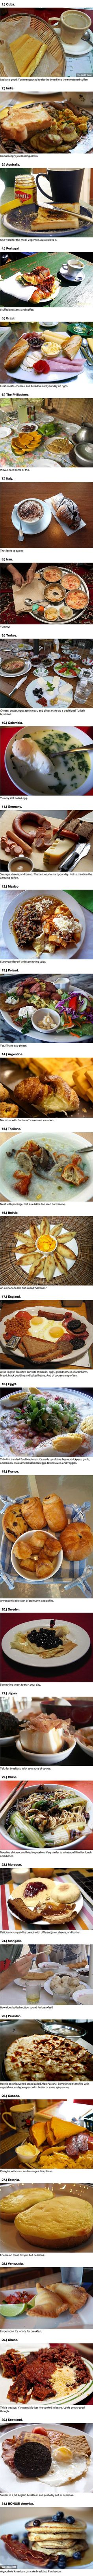 31 Breakfasts From Around The World // What about cooking everyday an international breakfast? #awesome #breakfast #international